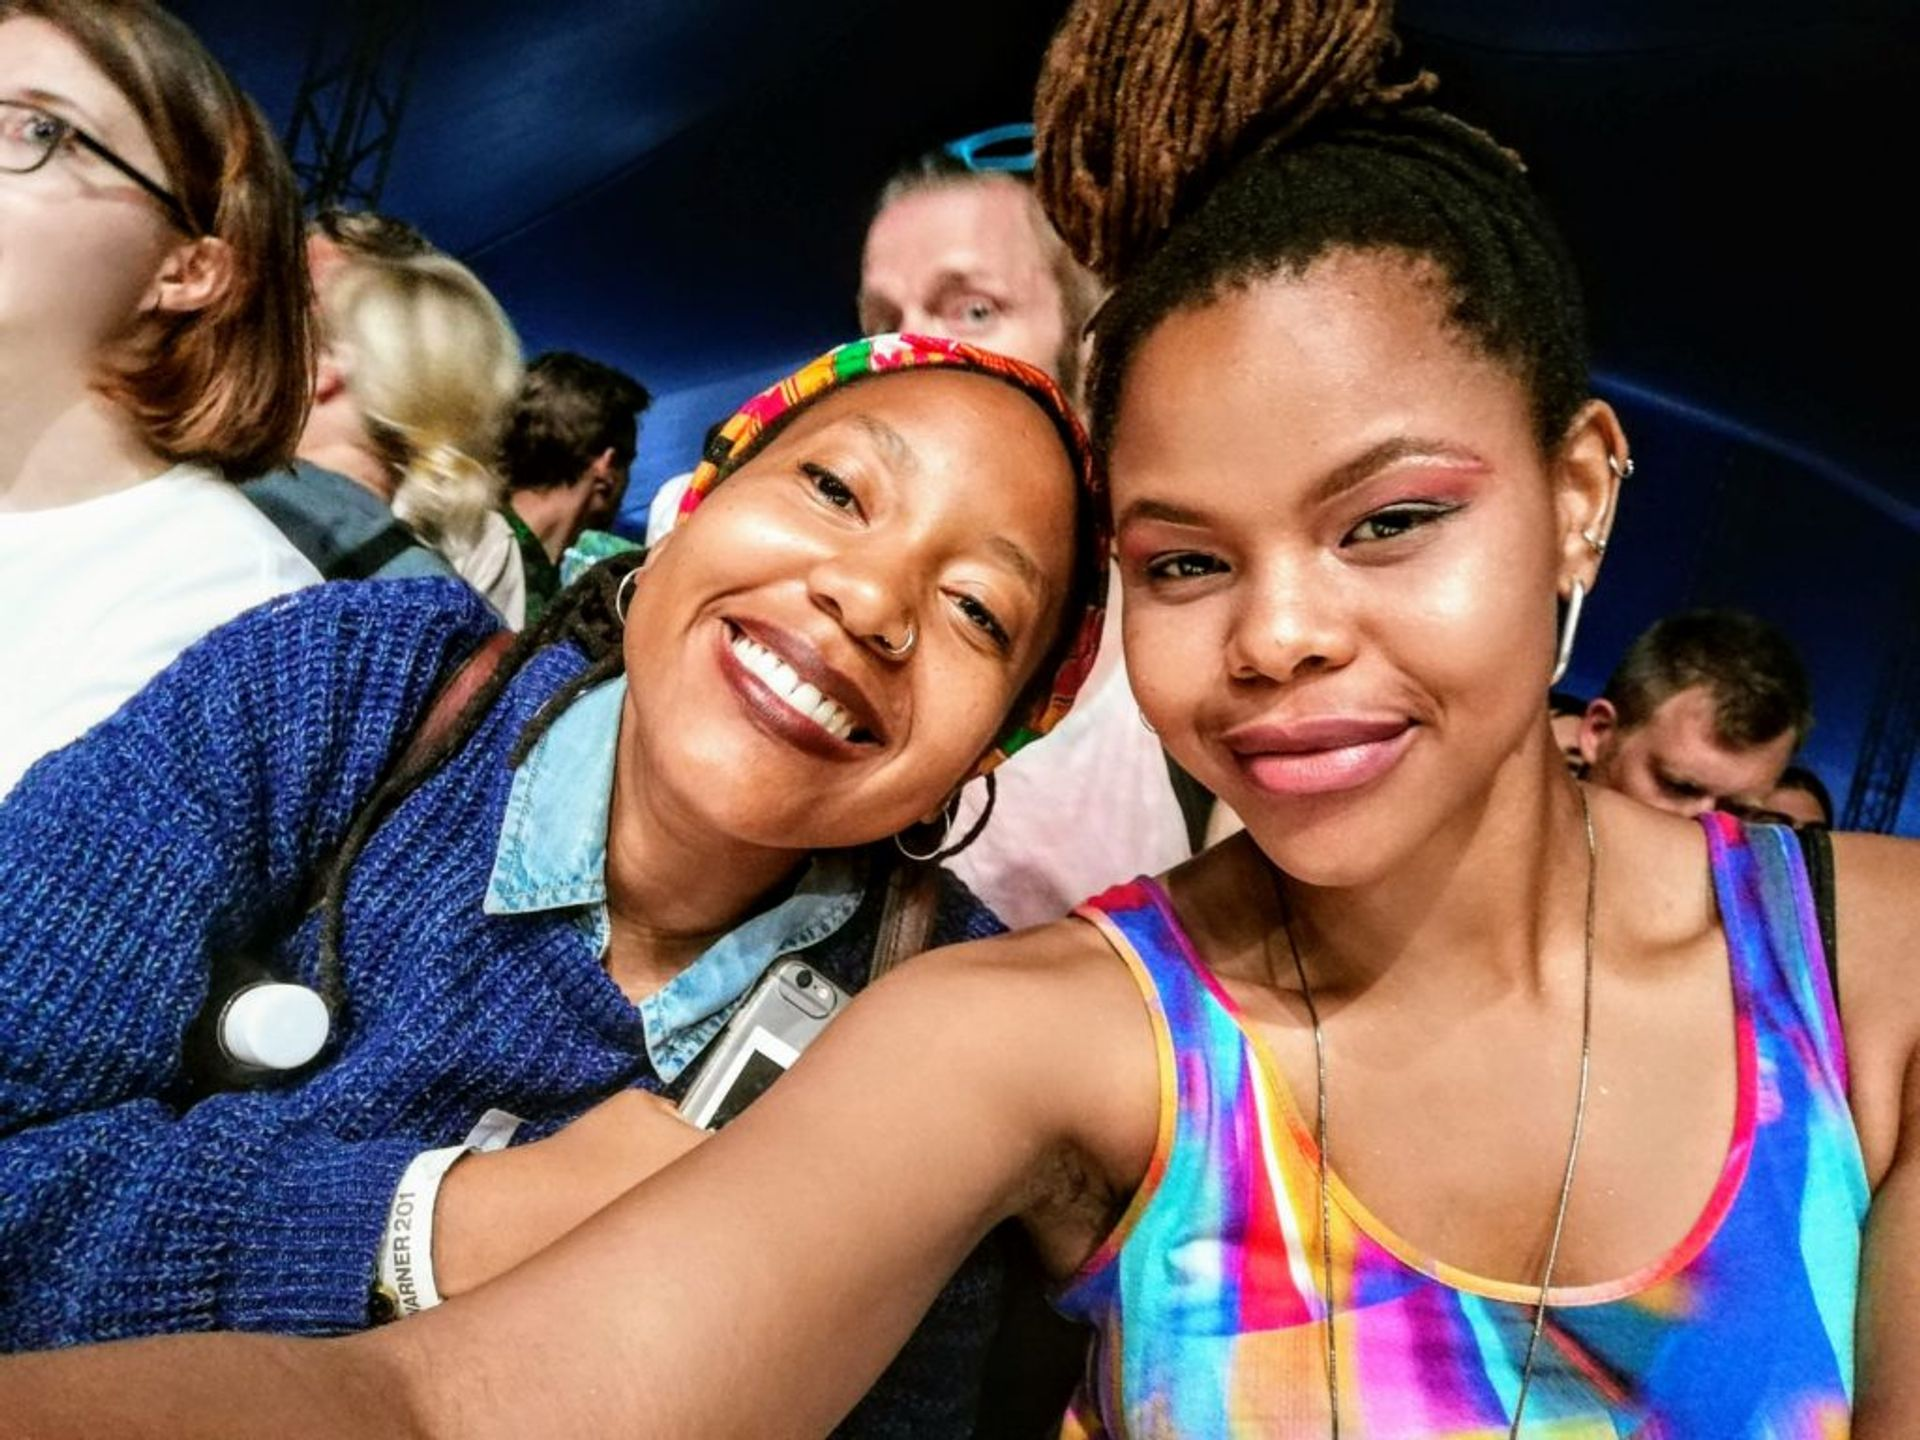 Me (right) and my friend Nthupula (left) from South Africa, before watching Khruangbin at WOW